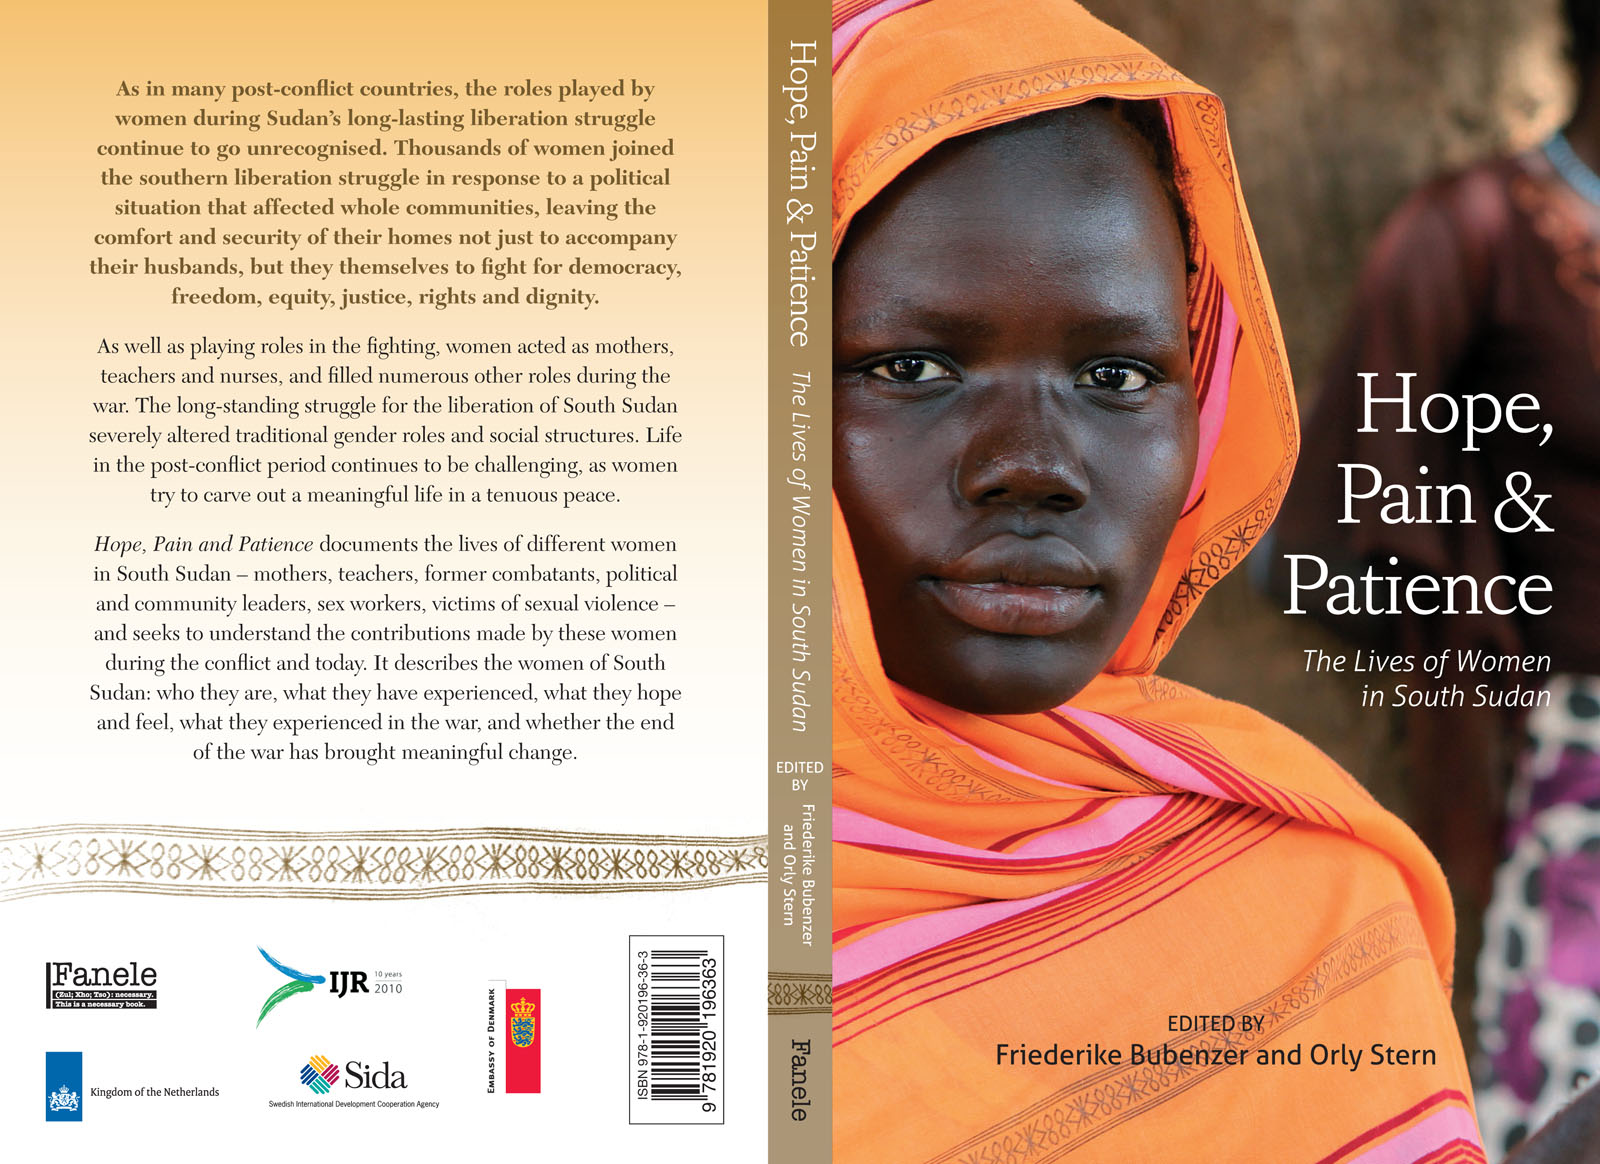 Hope, Pain and Patience: The Lives of Women in South SudanImages for Institute for Justice and Reconciliation 2011 Publication